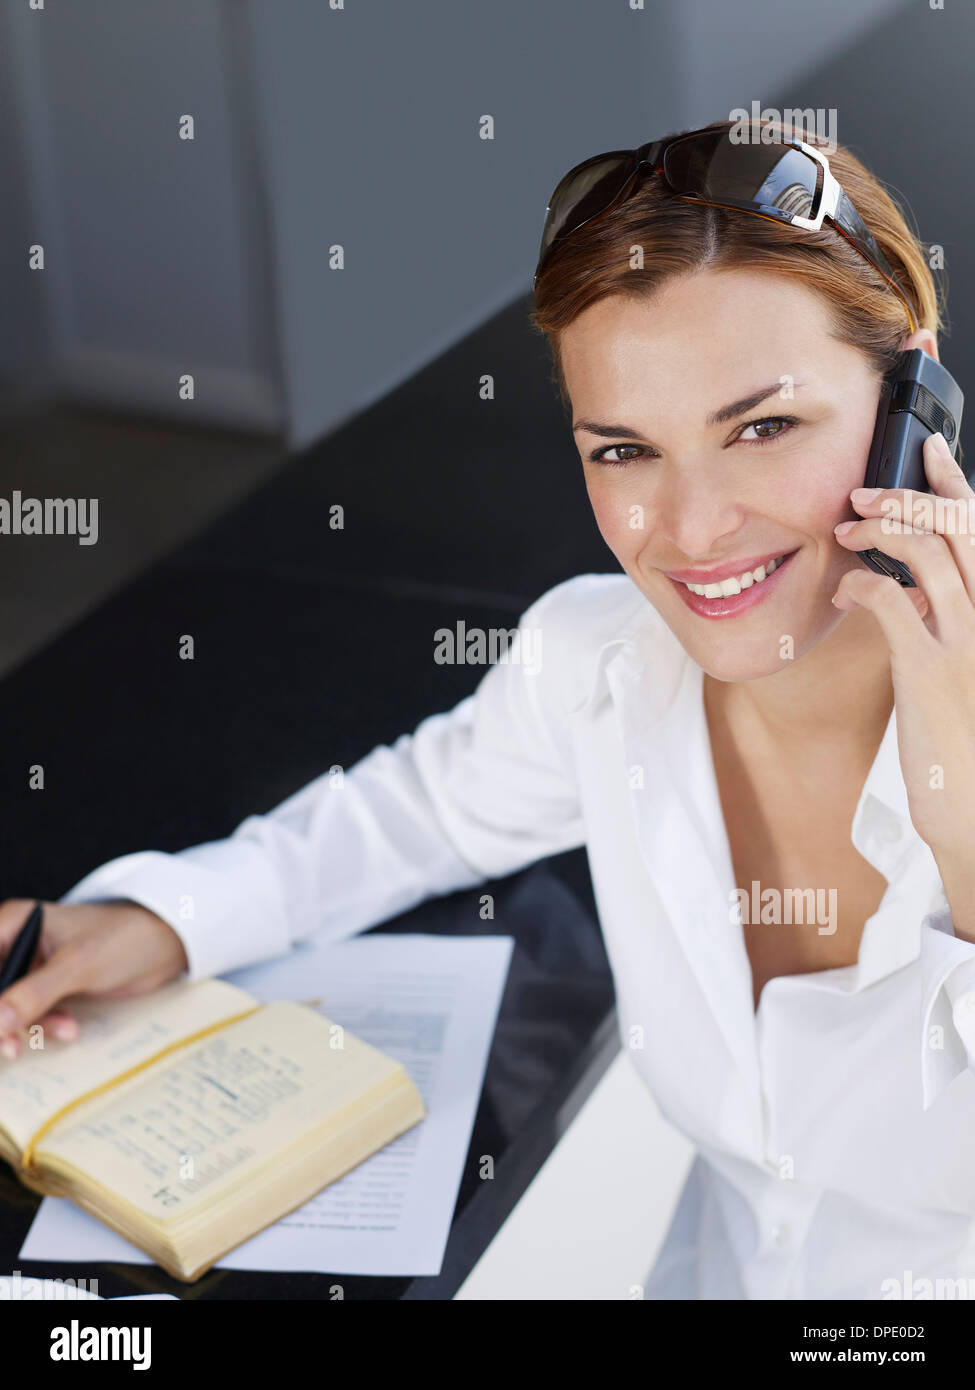 Portrait of young businesswoman using mobile phone - Stock Image